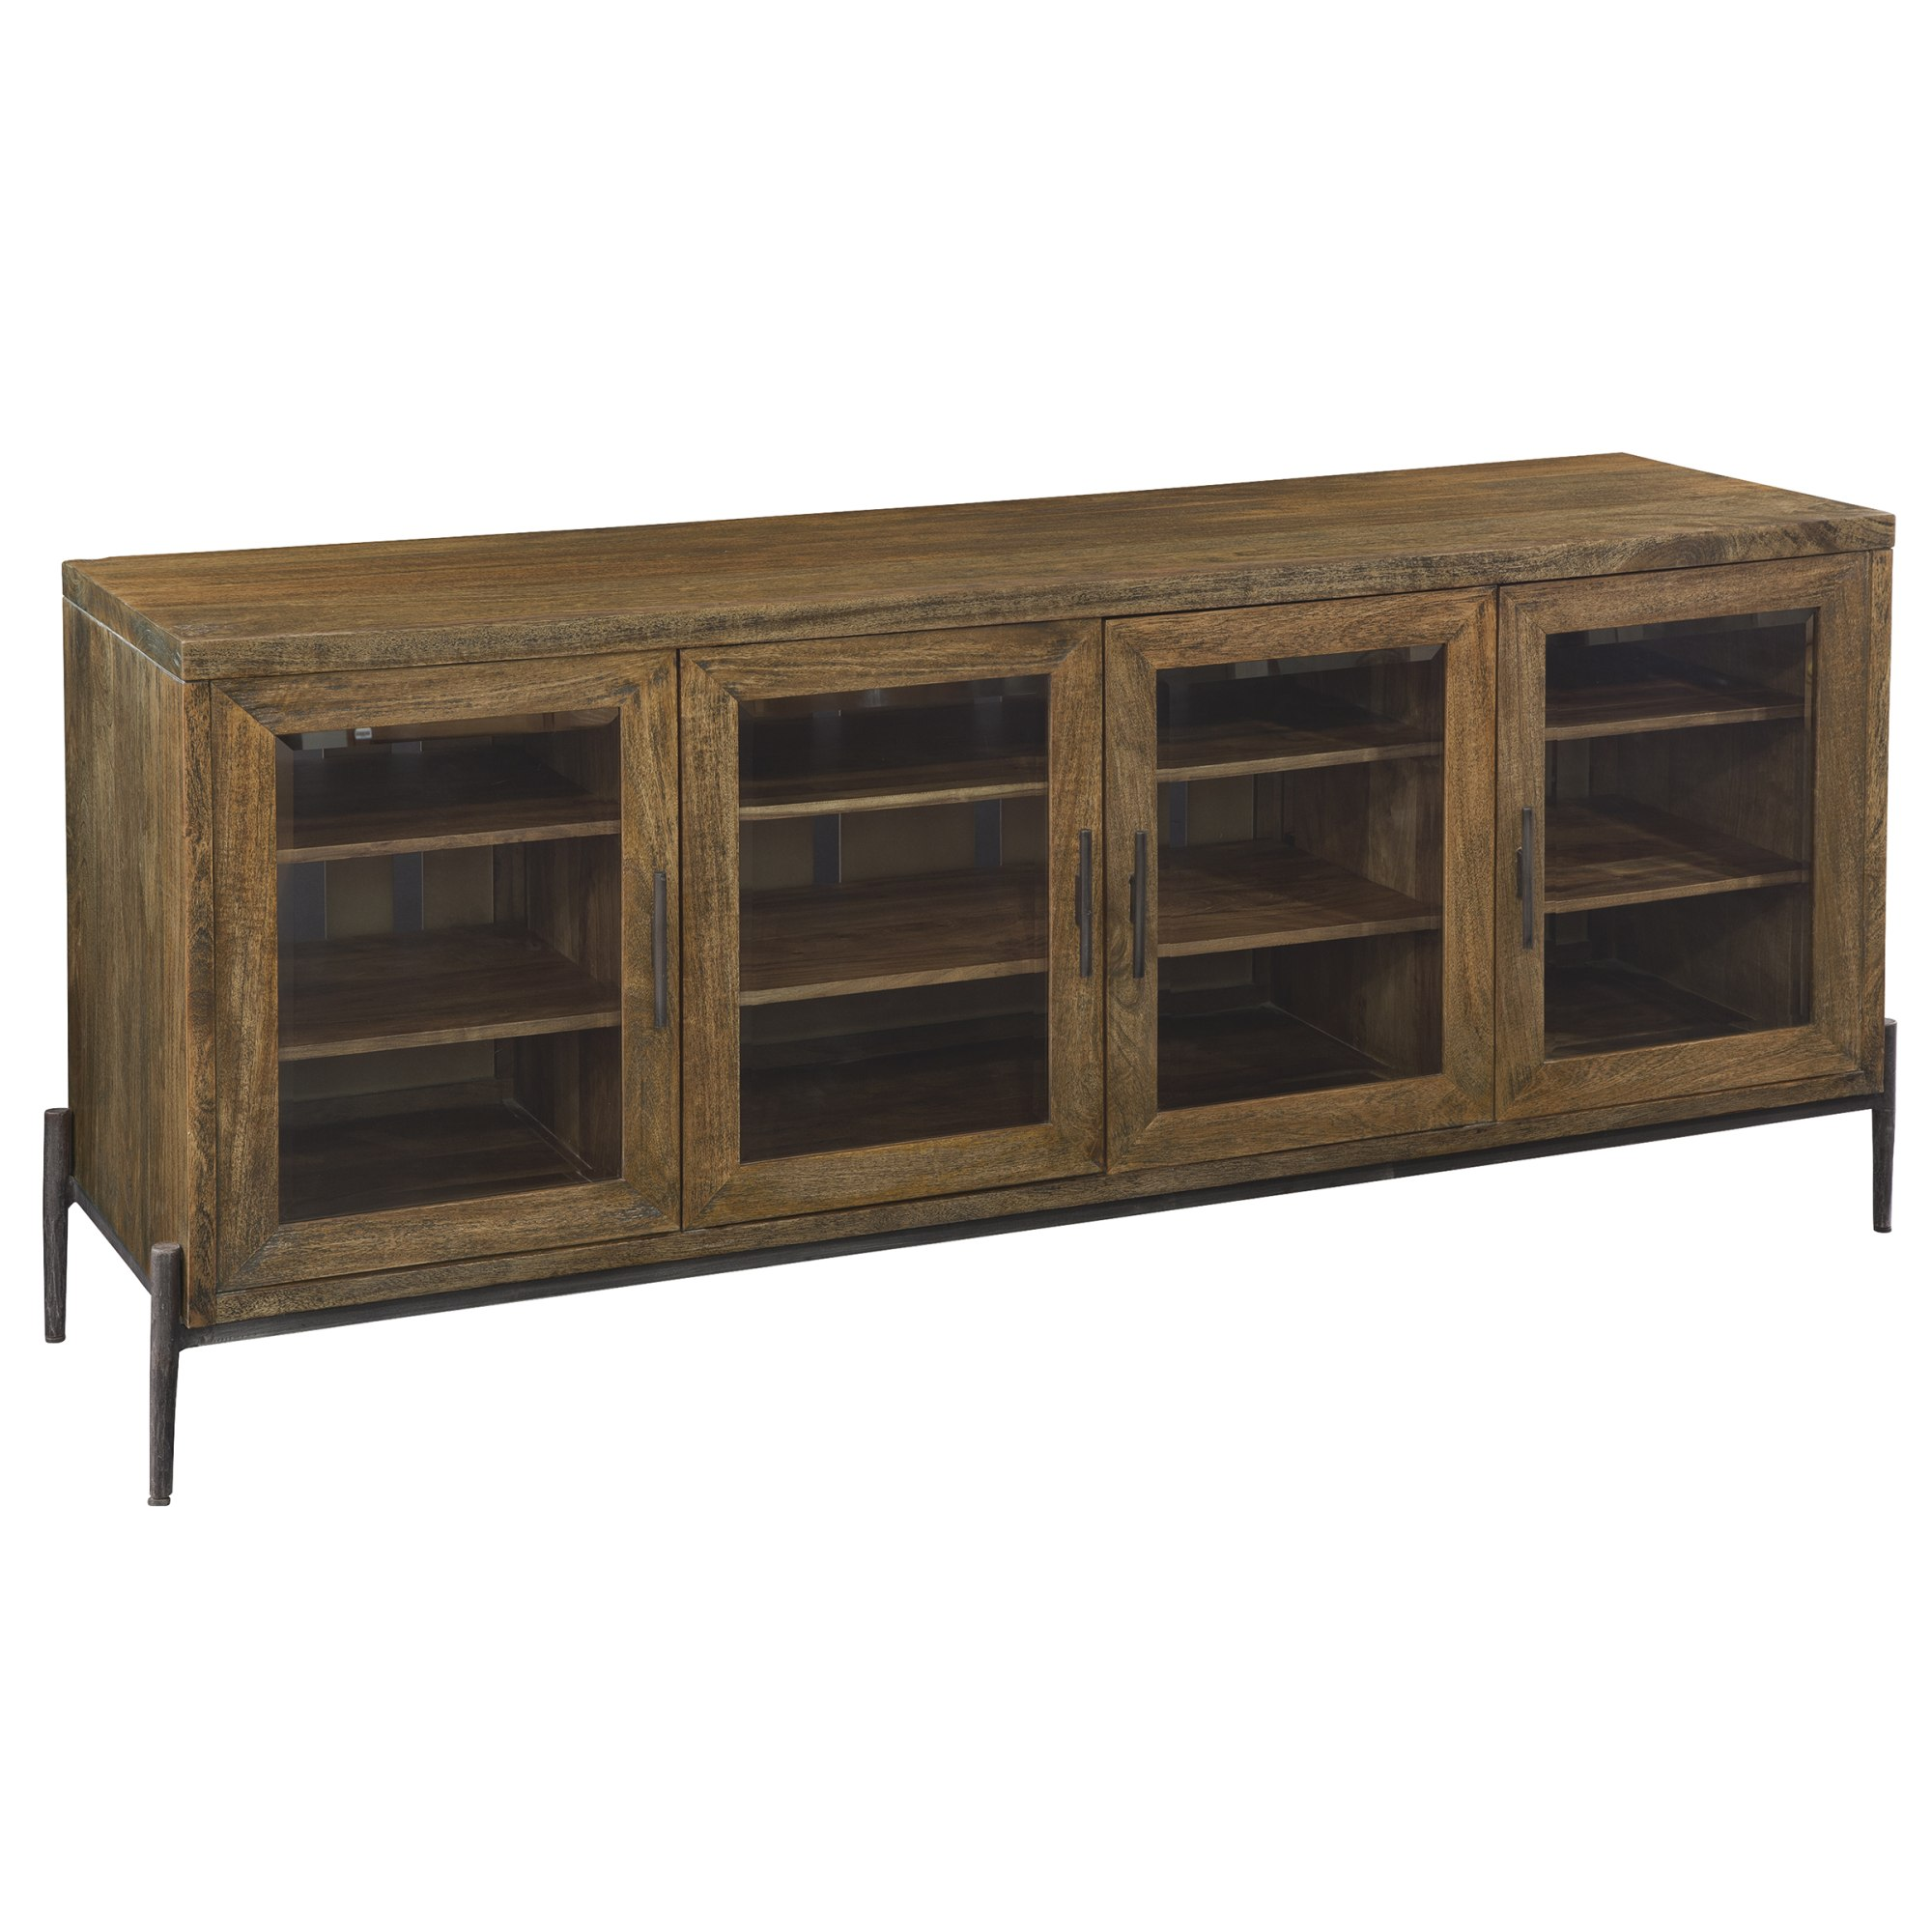 Image for 2-3750 Bedford Park Entertainment Console from Hekman Official Website